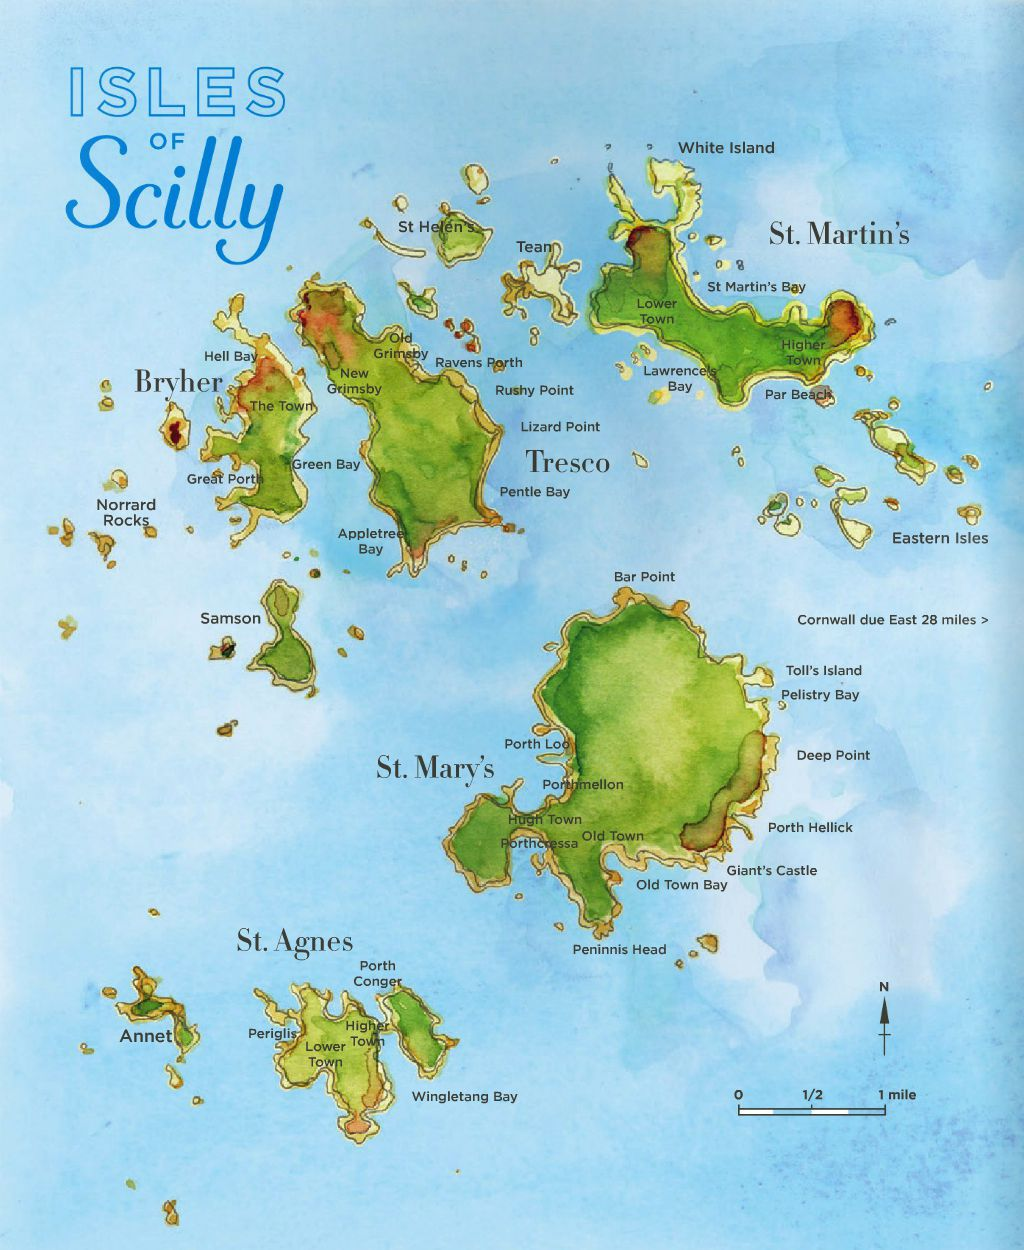 Map of Isles of Scilly